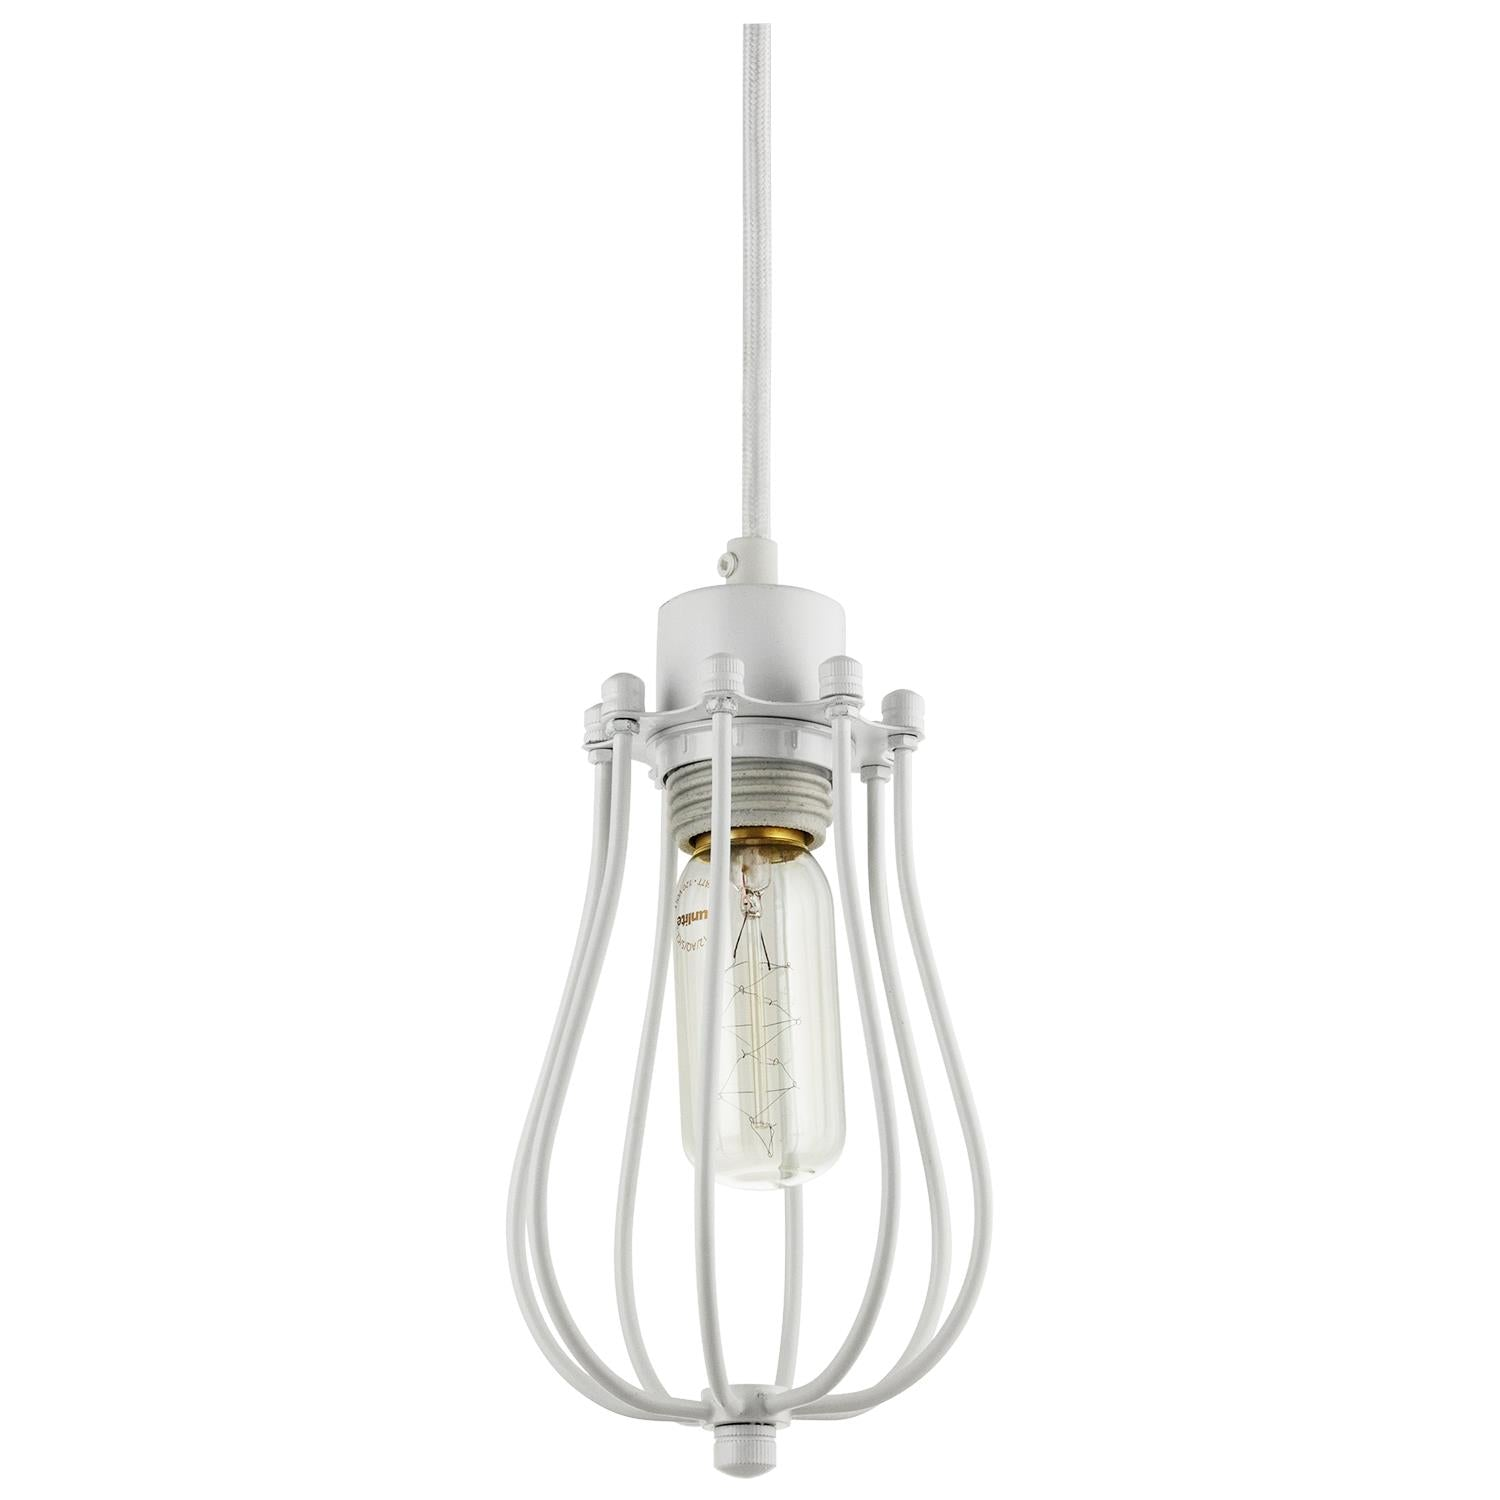 SUNLITE 07014-SU E26 Antique Style White Pendant Light Fixture